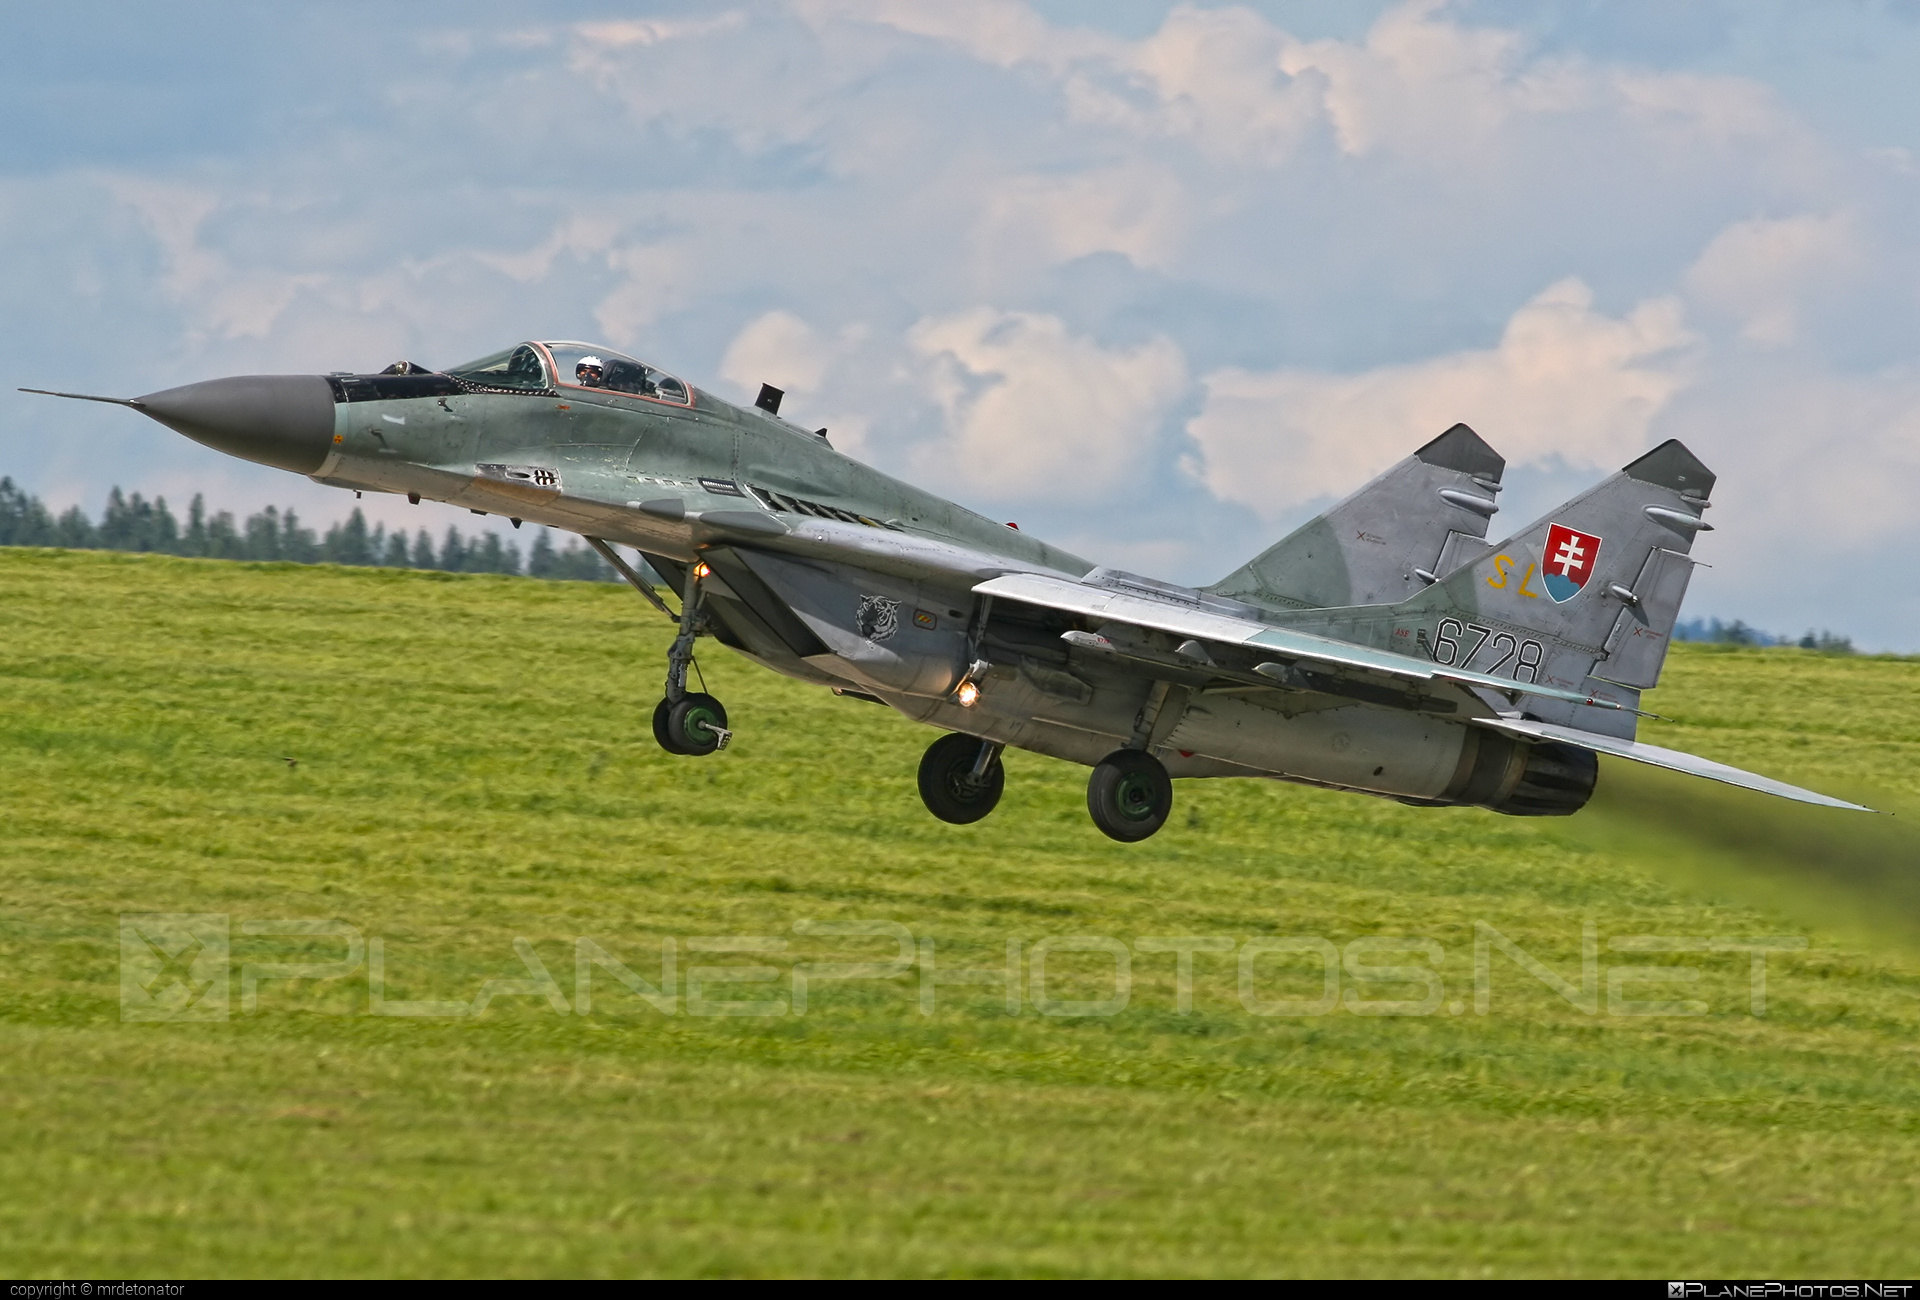 Mikoyan-Gurevich MiG-29AS - 6728 operated by Vzdušné sily OS SR (Slovak Air Force) #mig #mig29 #mig29as #mikoyangurevich #slovakairforce #vzdusnesilyossr